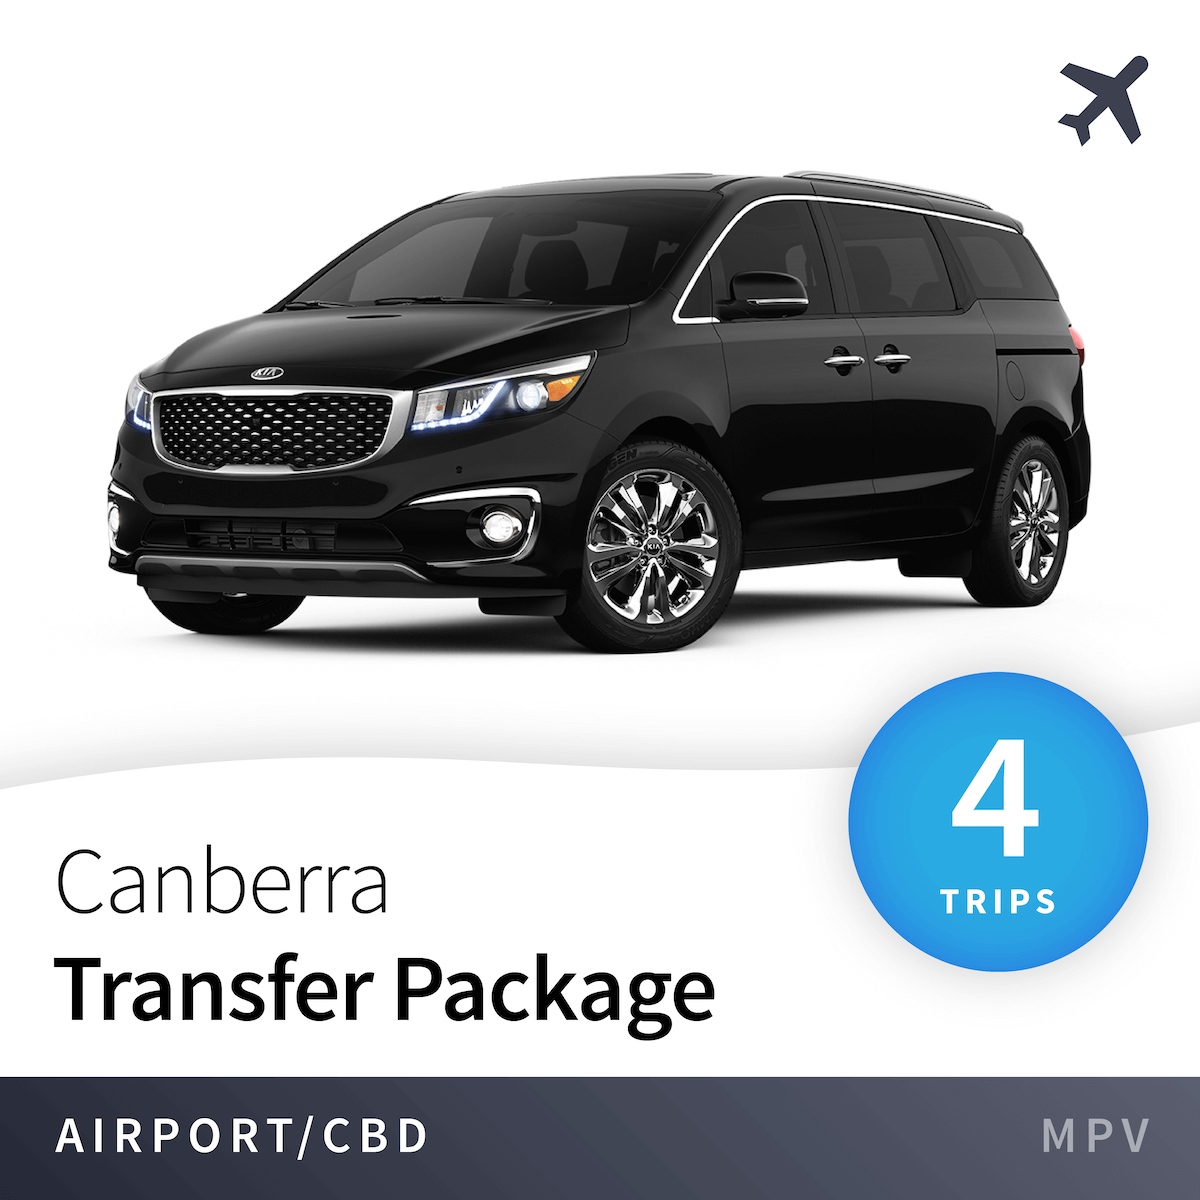 Canberra Airport Transfer Package - MPV (4 Trips) 9